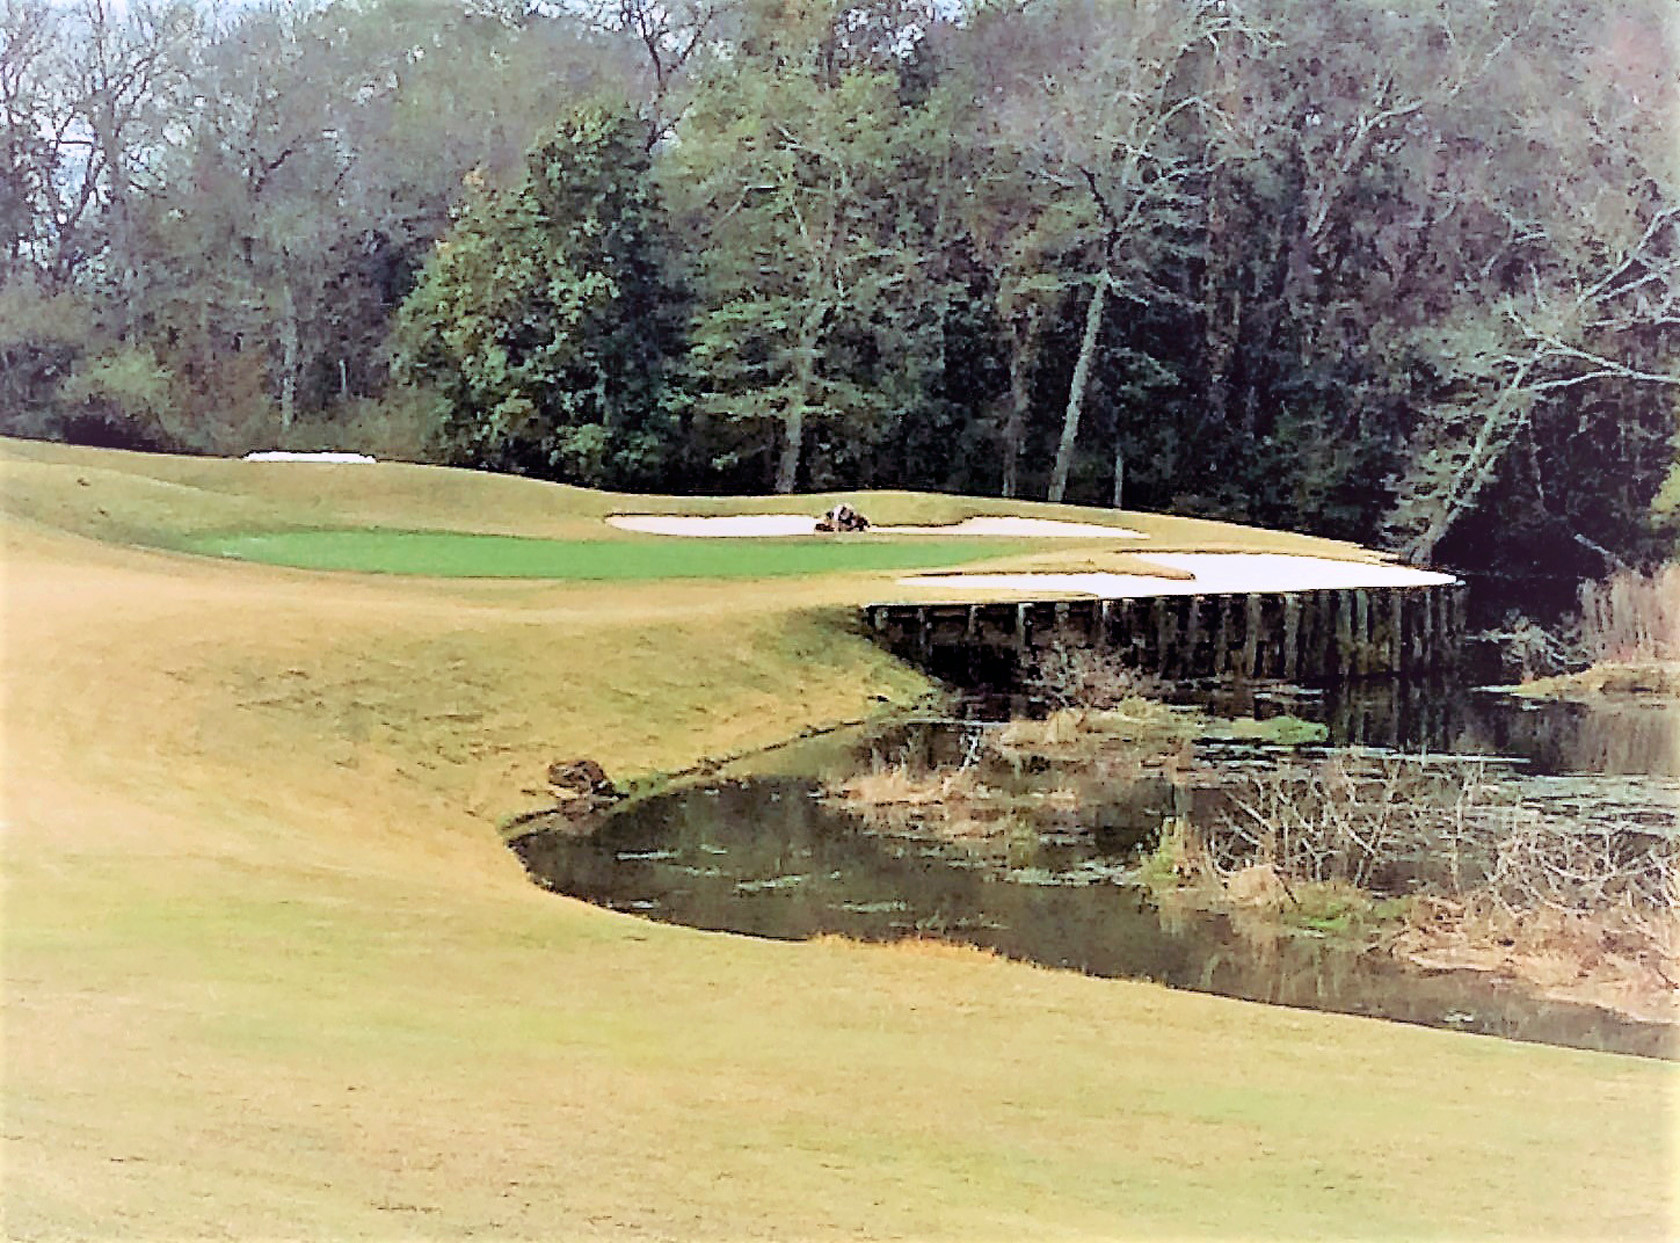 Many of the newly renovated Dogwood holes have a more open approach while maintaining challenging hazards.